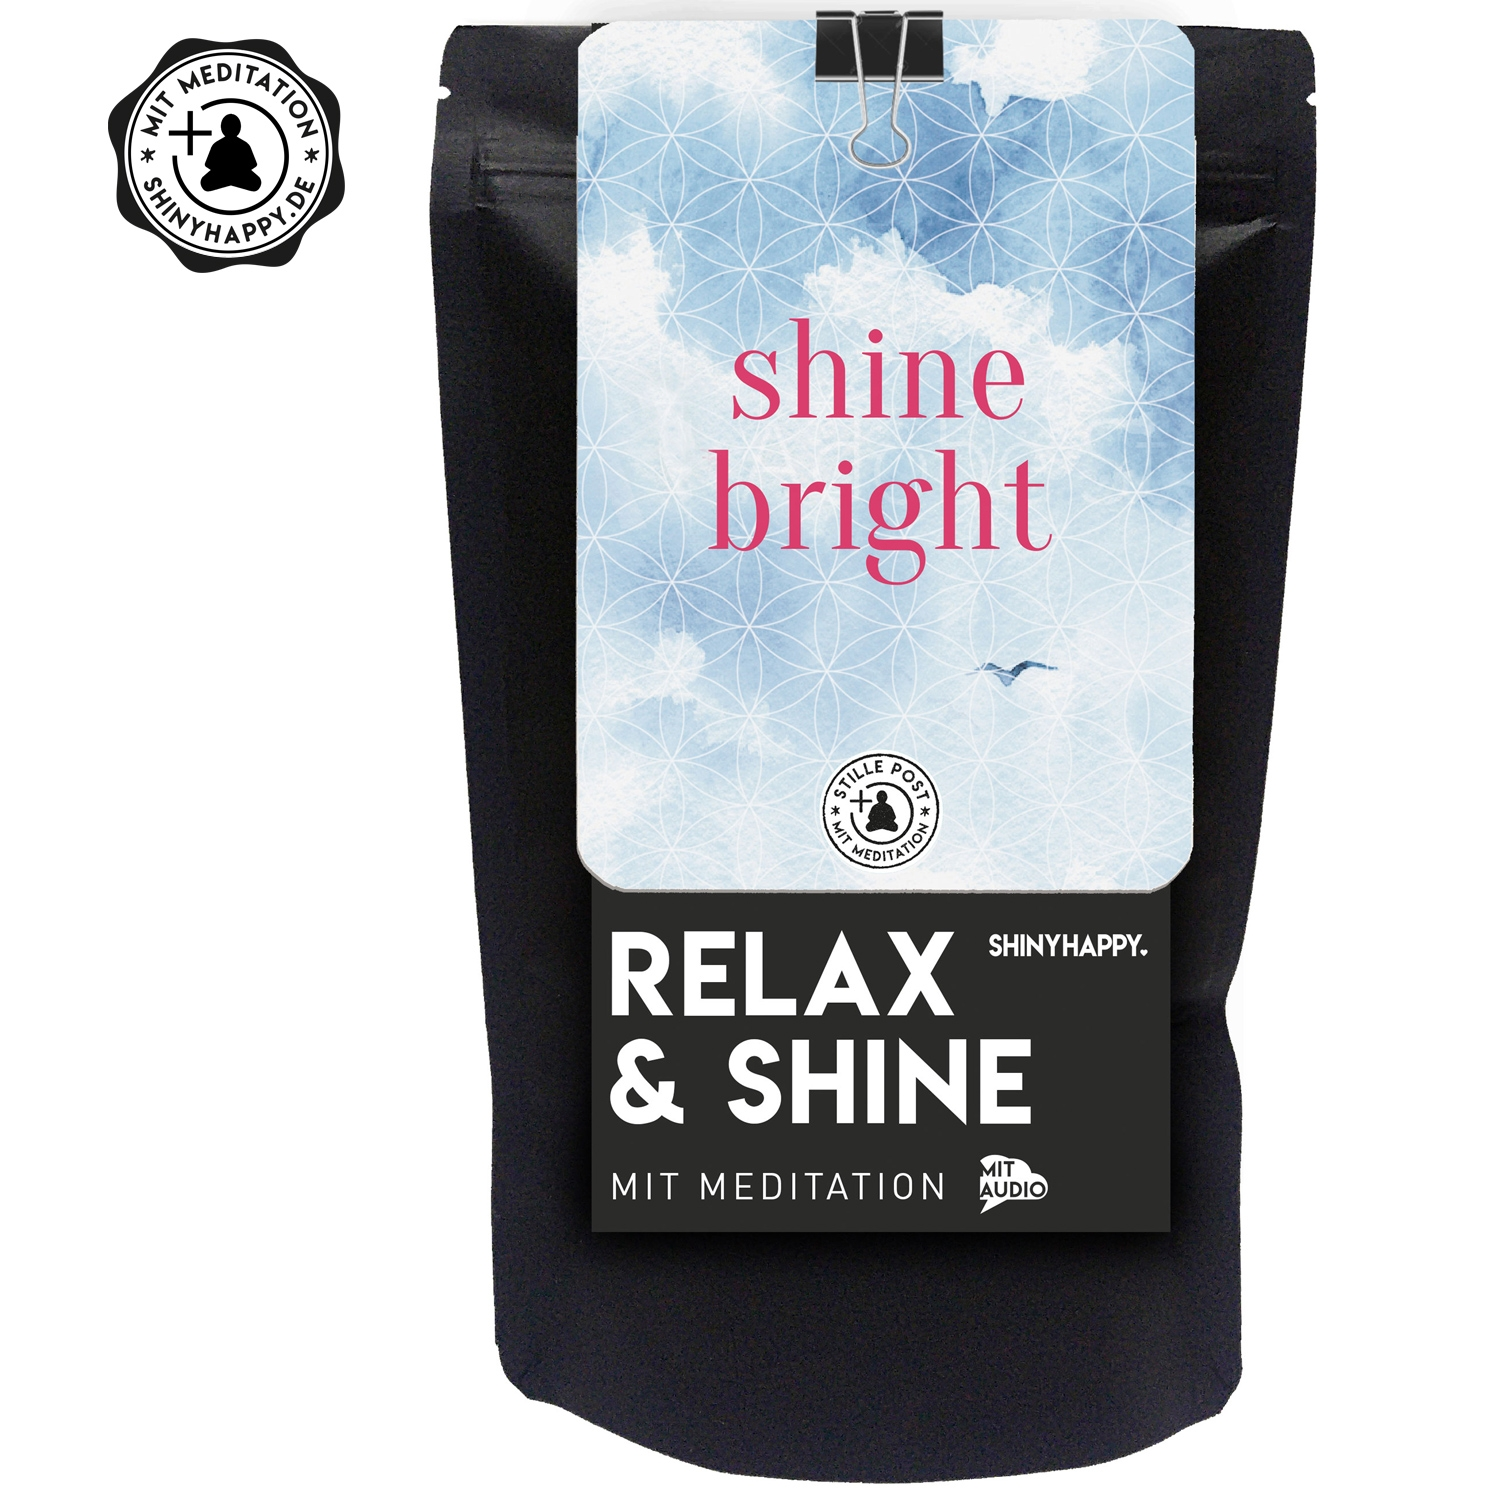 relaxshine_shine_bright_02